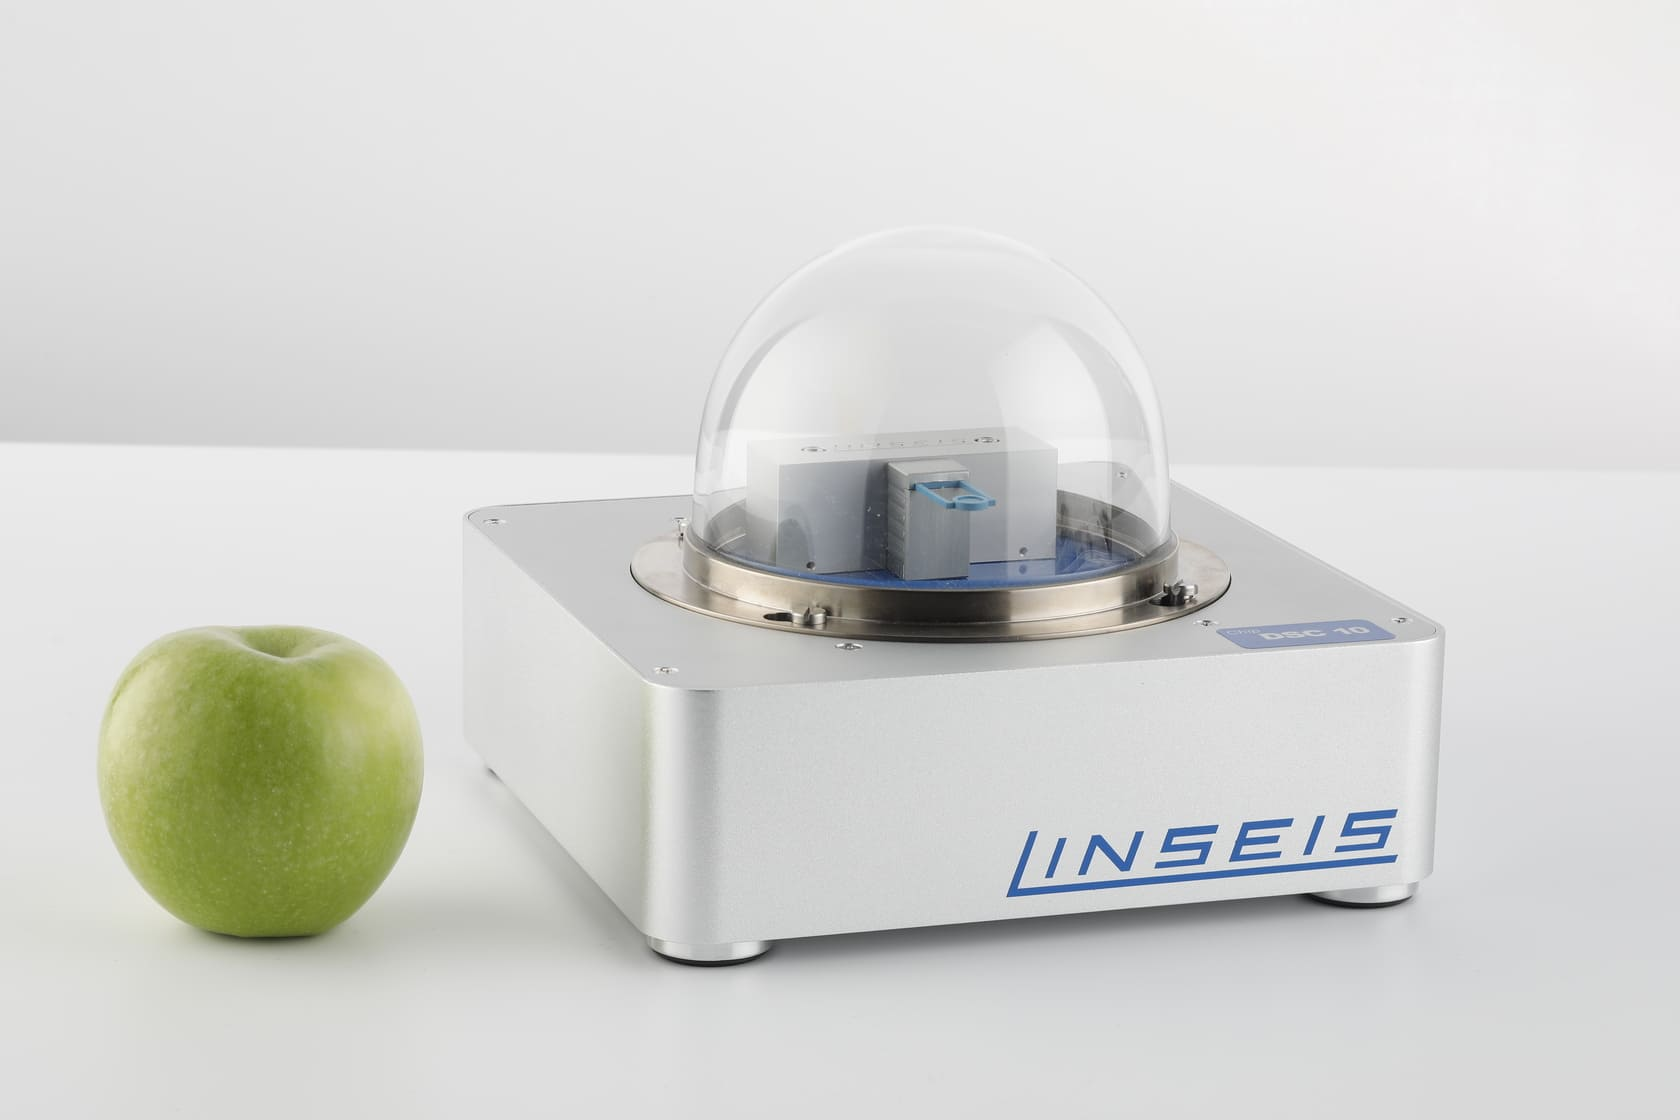 Linseis Chip-DSC and apple